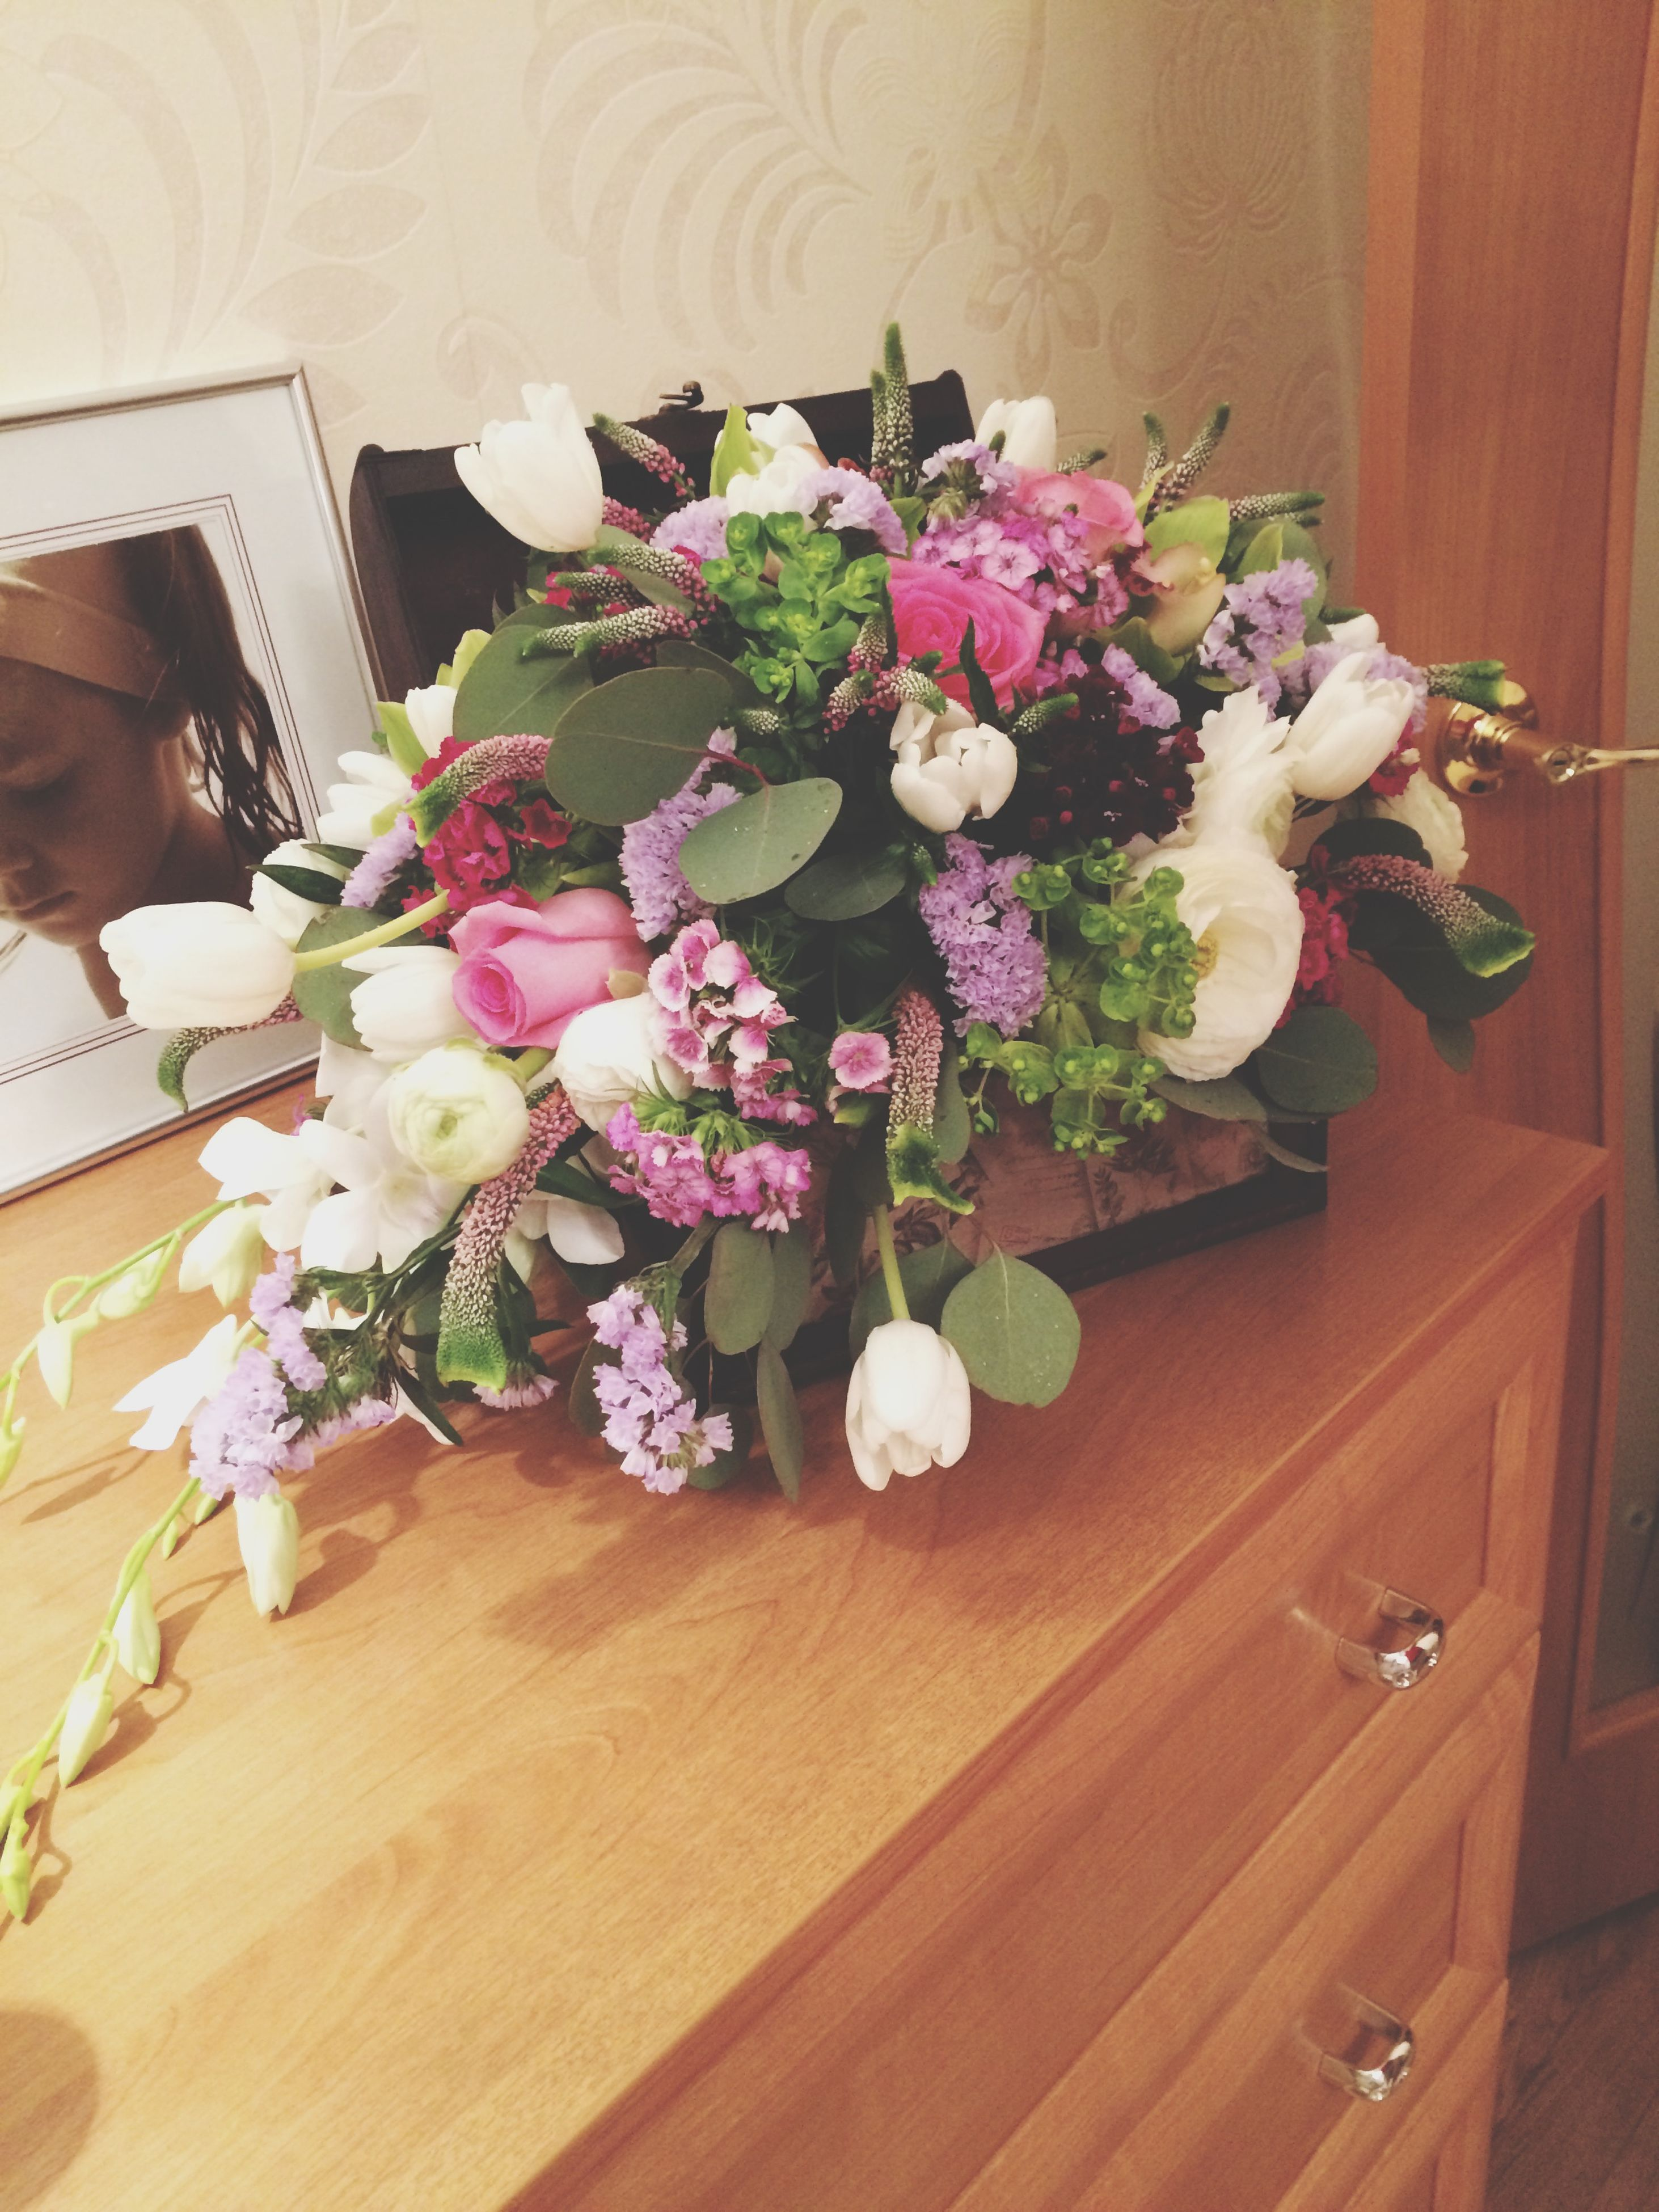 flower, indoors, freshness, wood - material, table, fragility, petal, vase, high angle view, wooden, flower arrangement, bunch of flowers, bouquet, flower head, beauty in nature, decoration, home interior, growth, plant, still life